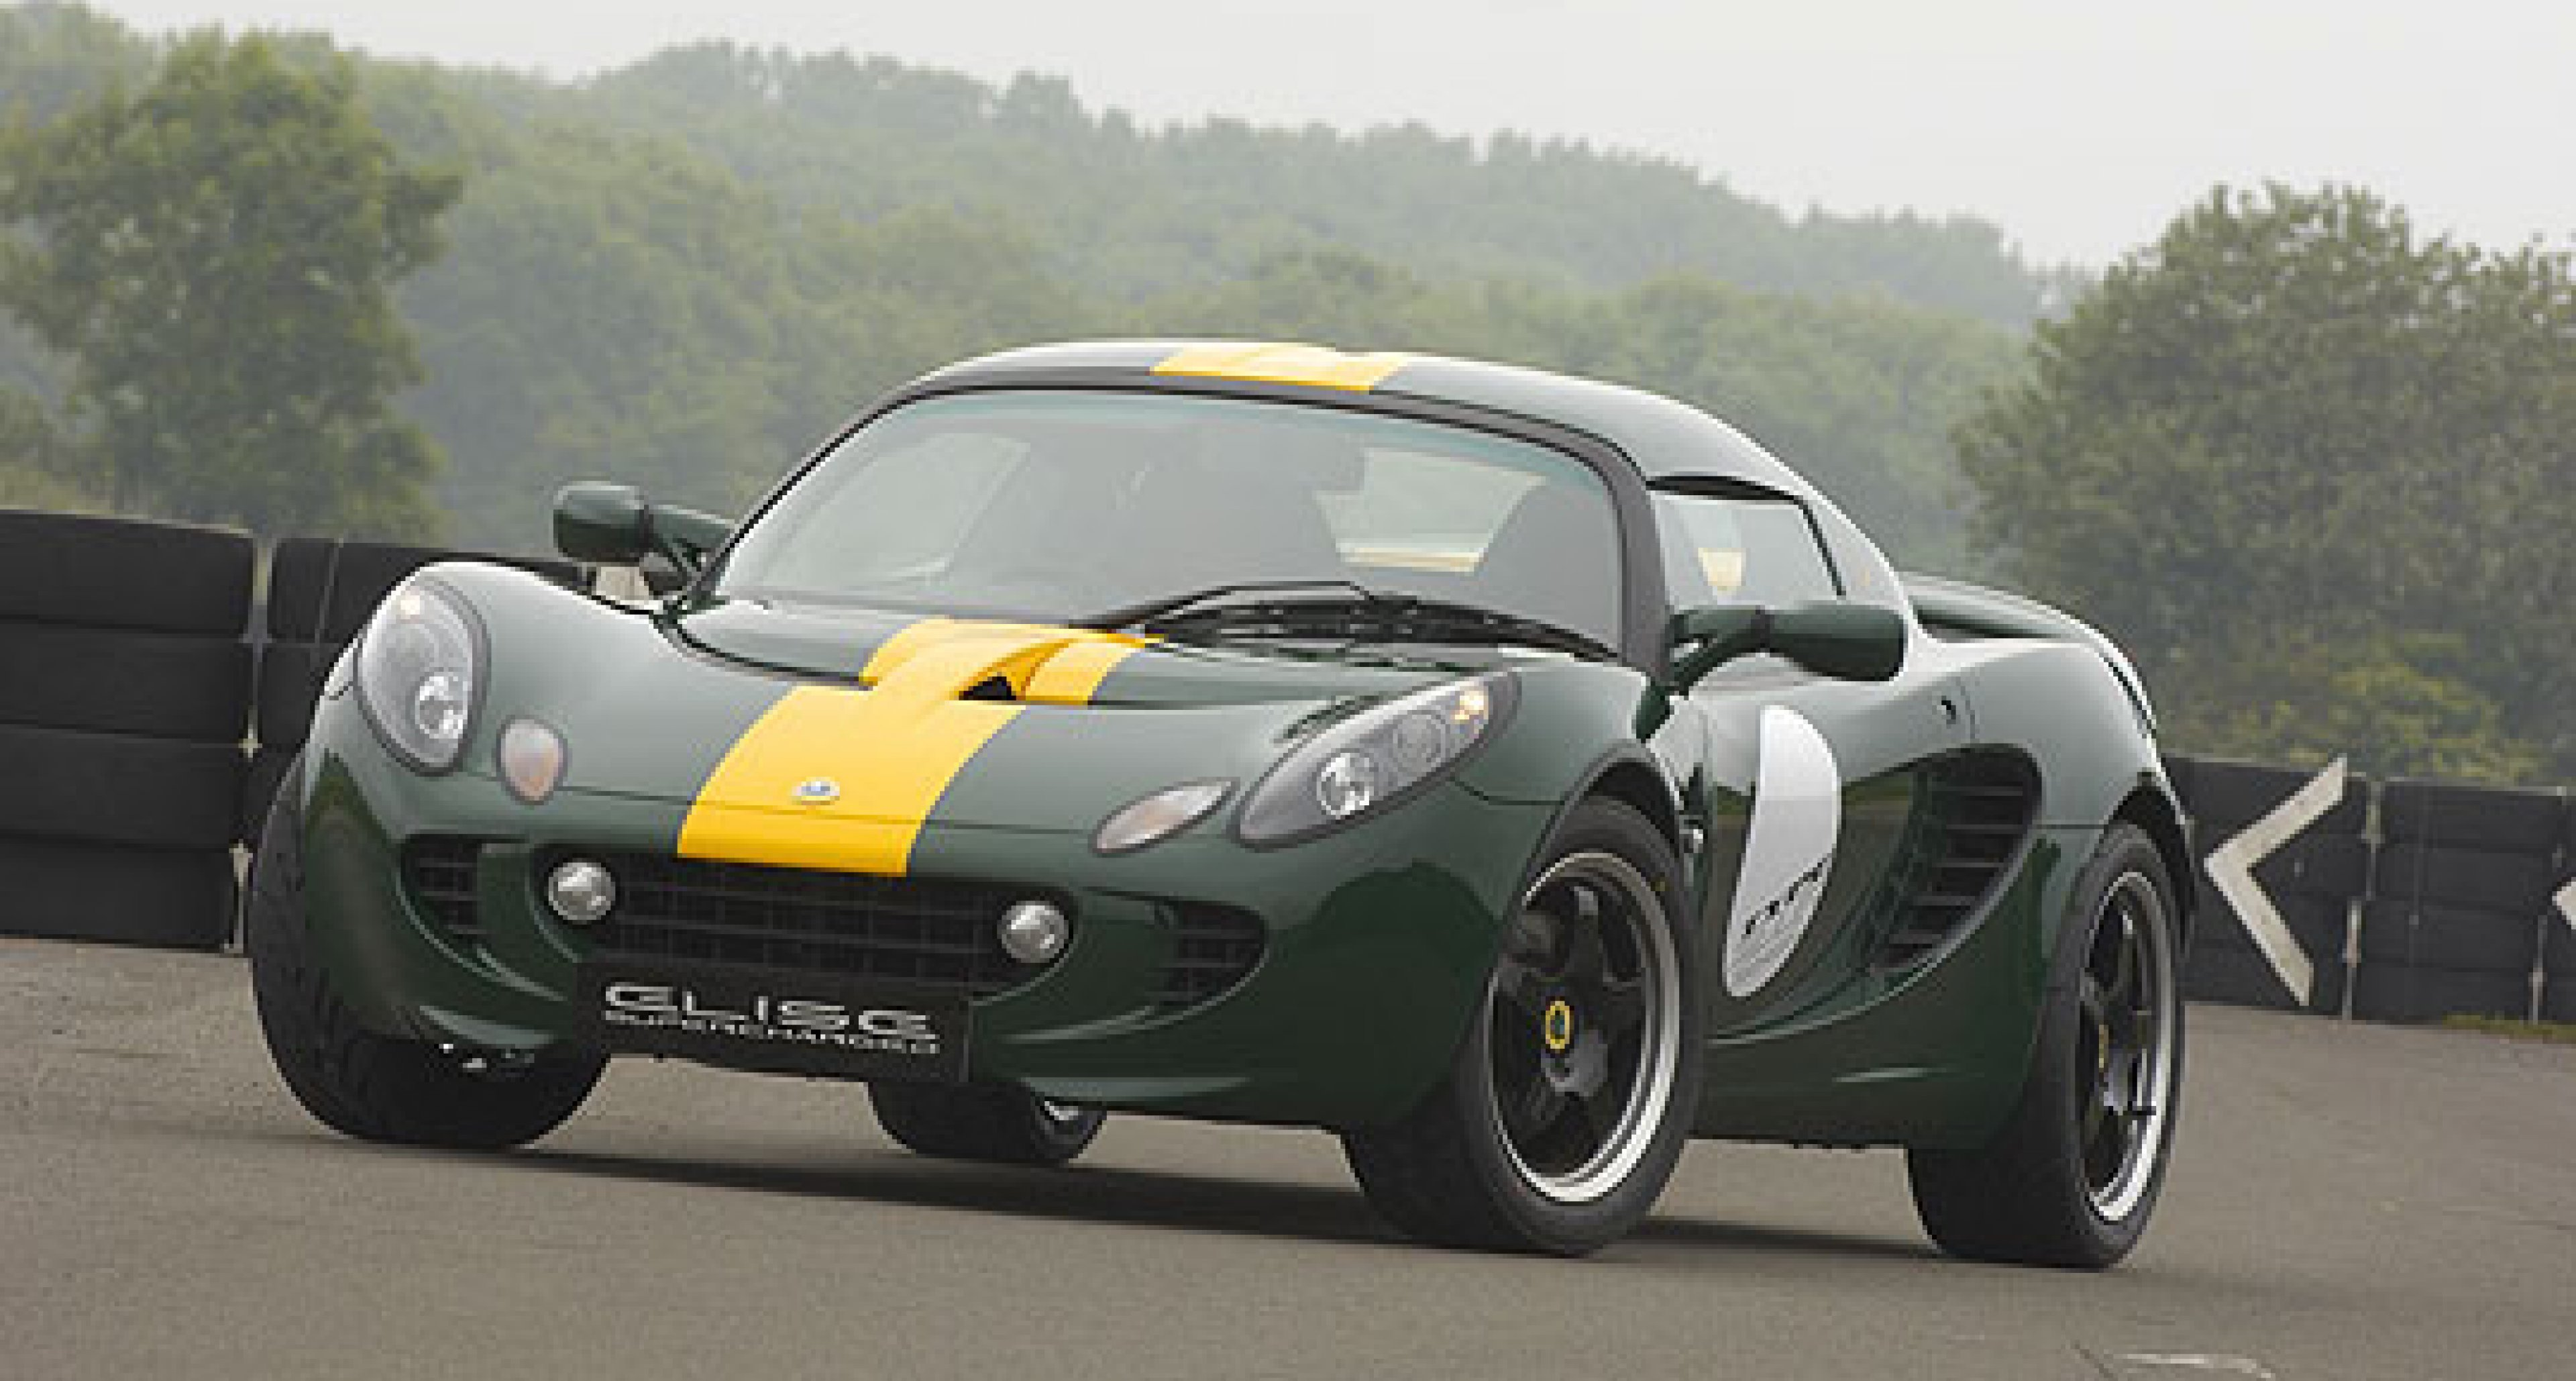 News from Lotus: The Clark Type 25 Elise SC